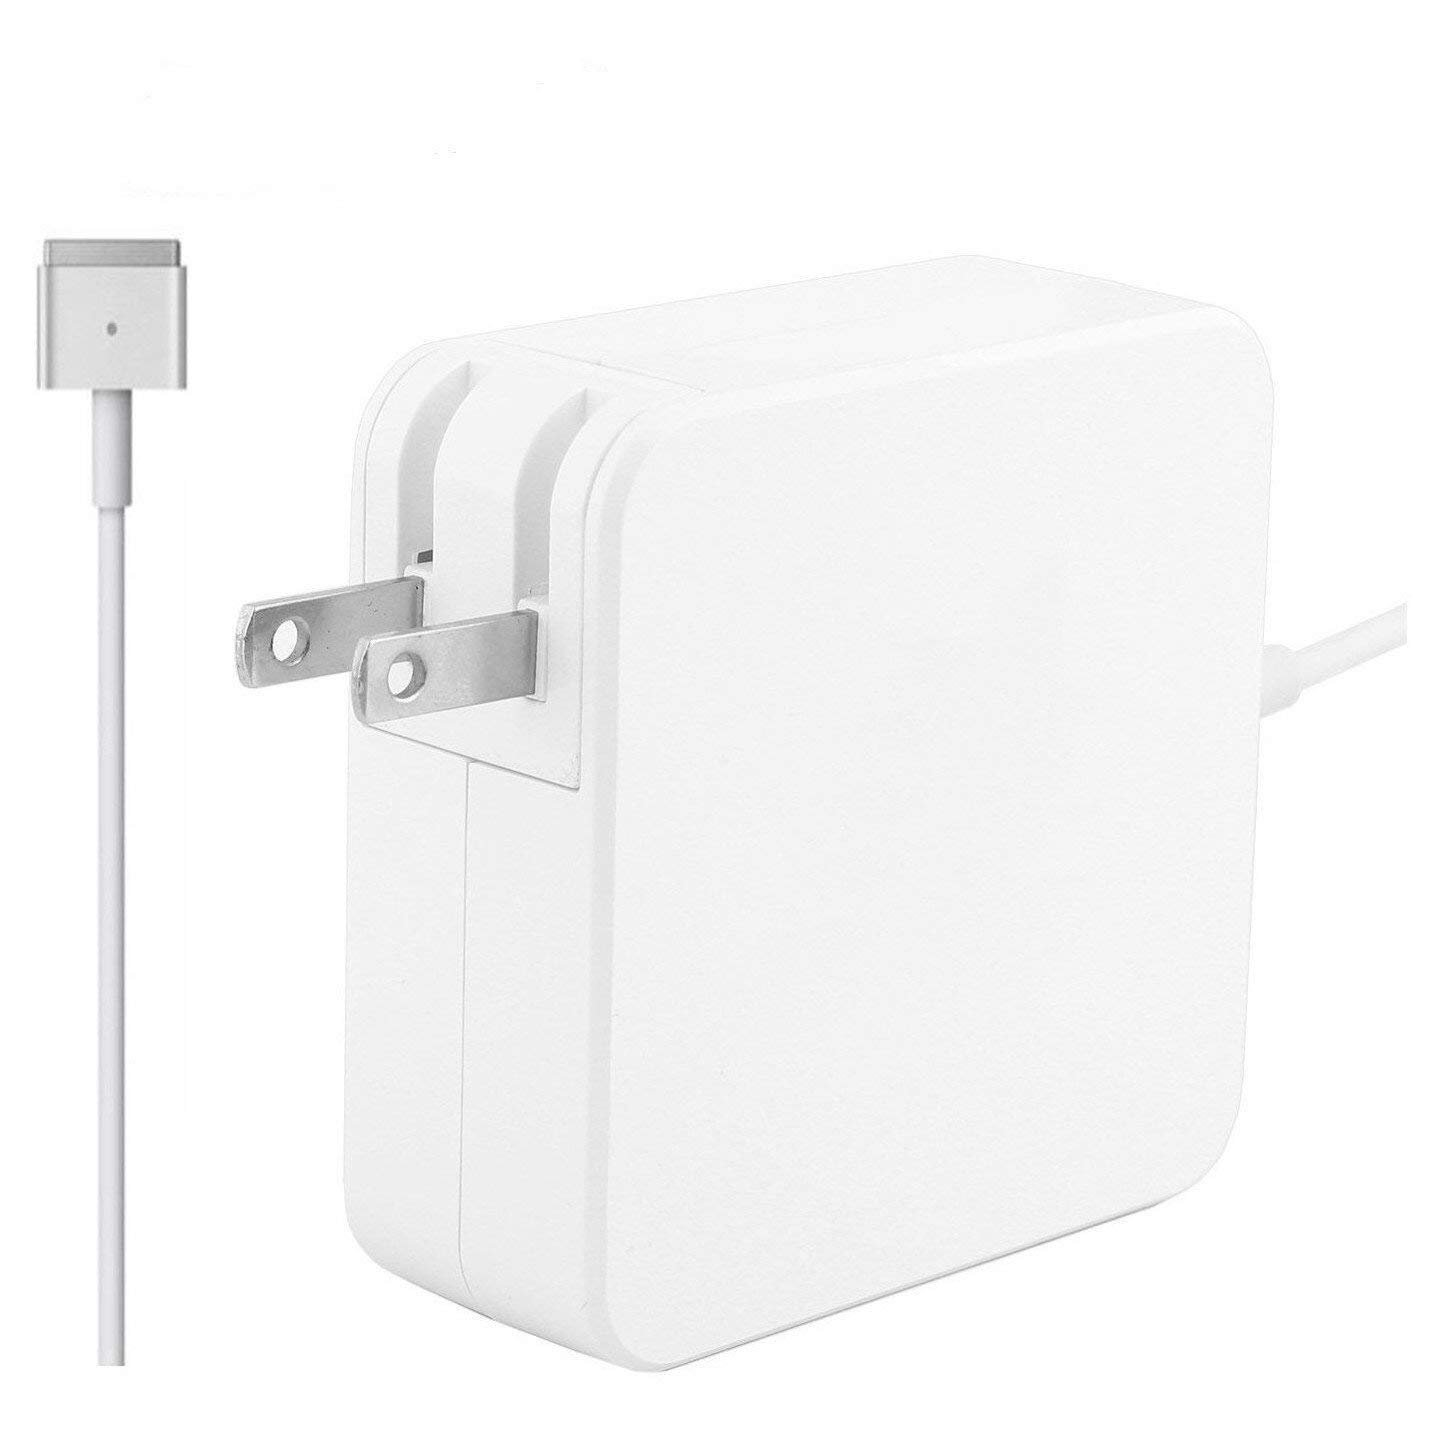 Czznn Mac-Book P.ro Charger, Replacement 60WT-Tip Power Adapter Charger for Tablet Computers with 13-inch (After Late 2012)